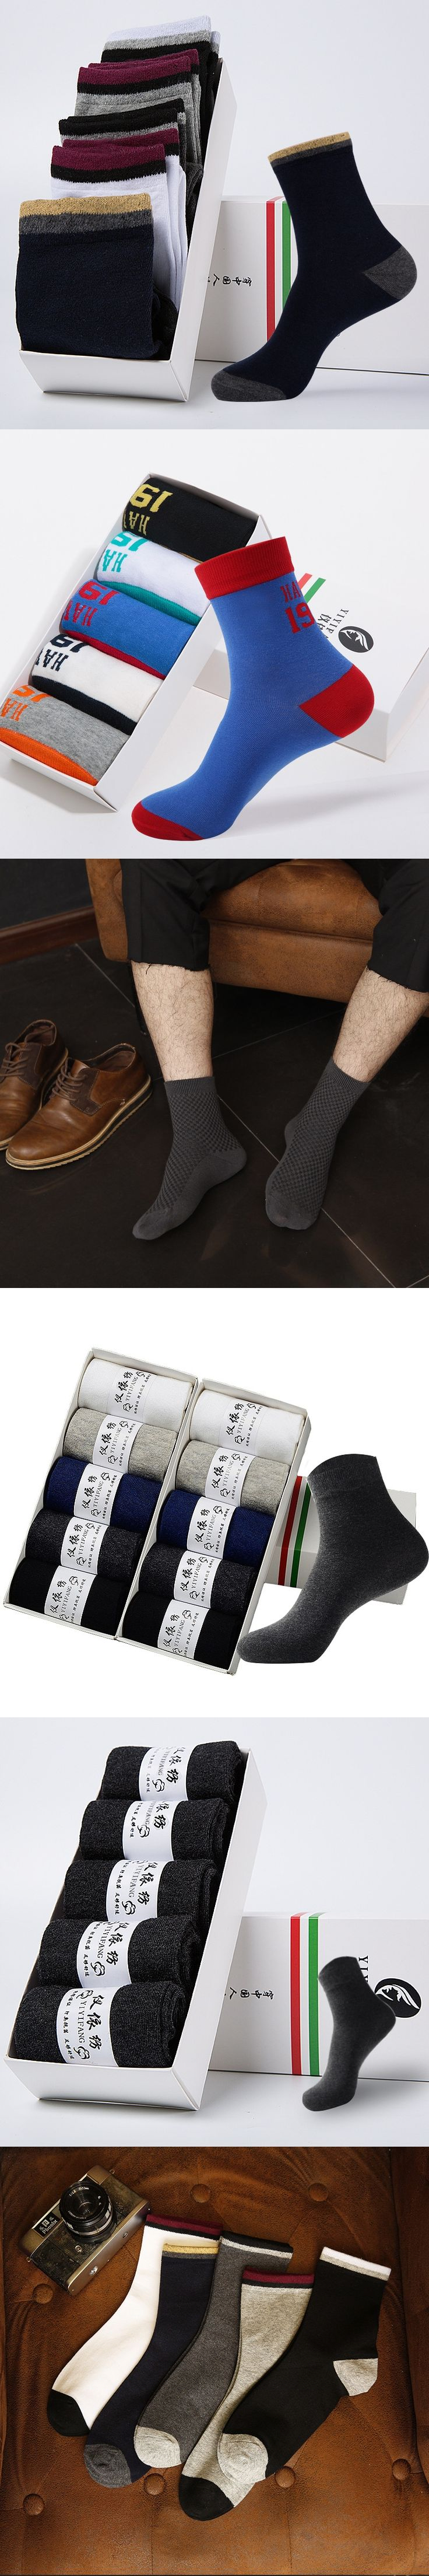 5 Paris /lot Long Socks Set Business Men Casual Bamboo Socks Solid Stripe Deodorant Male Combed Cotton Colorful Funny Happy Sock